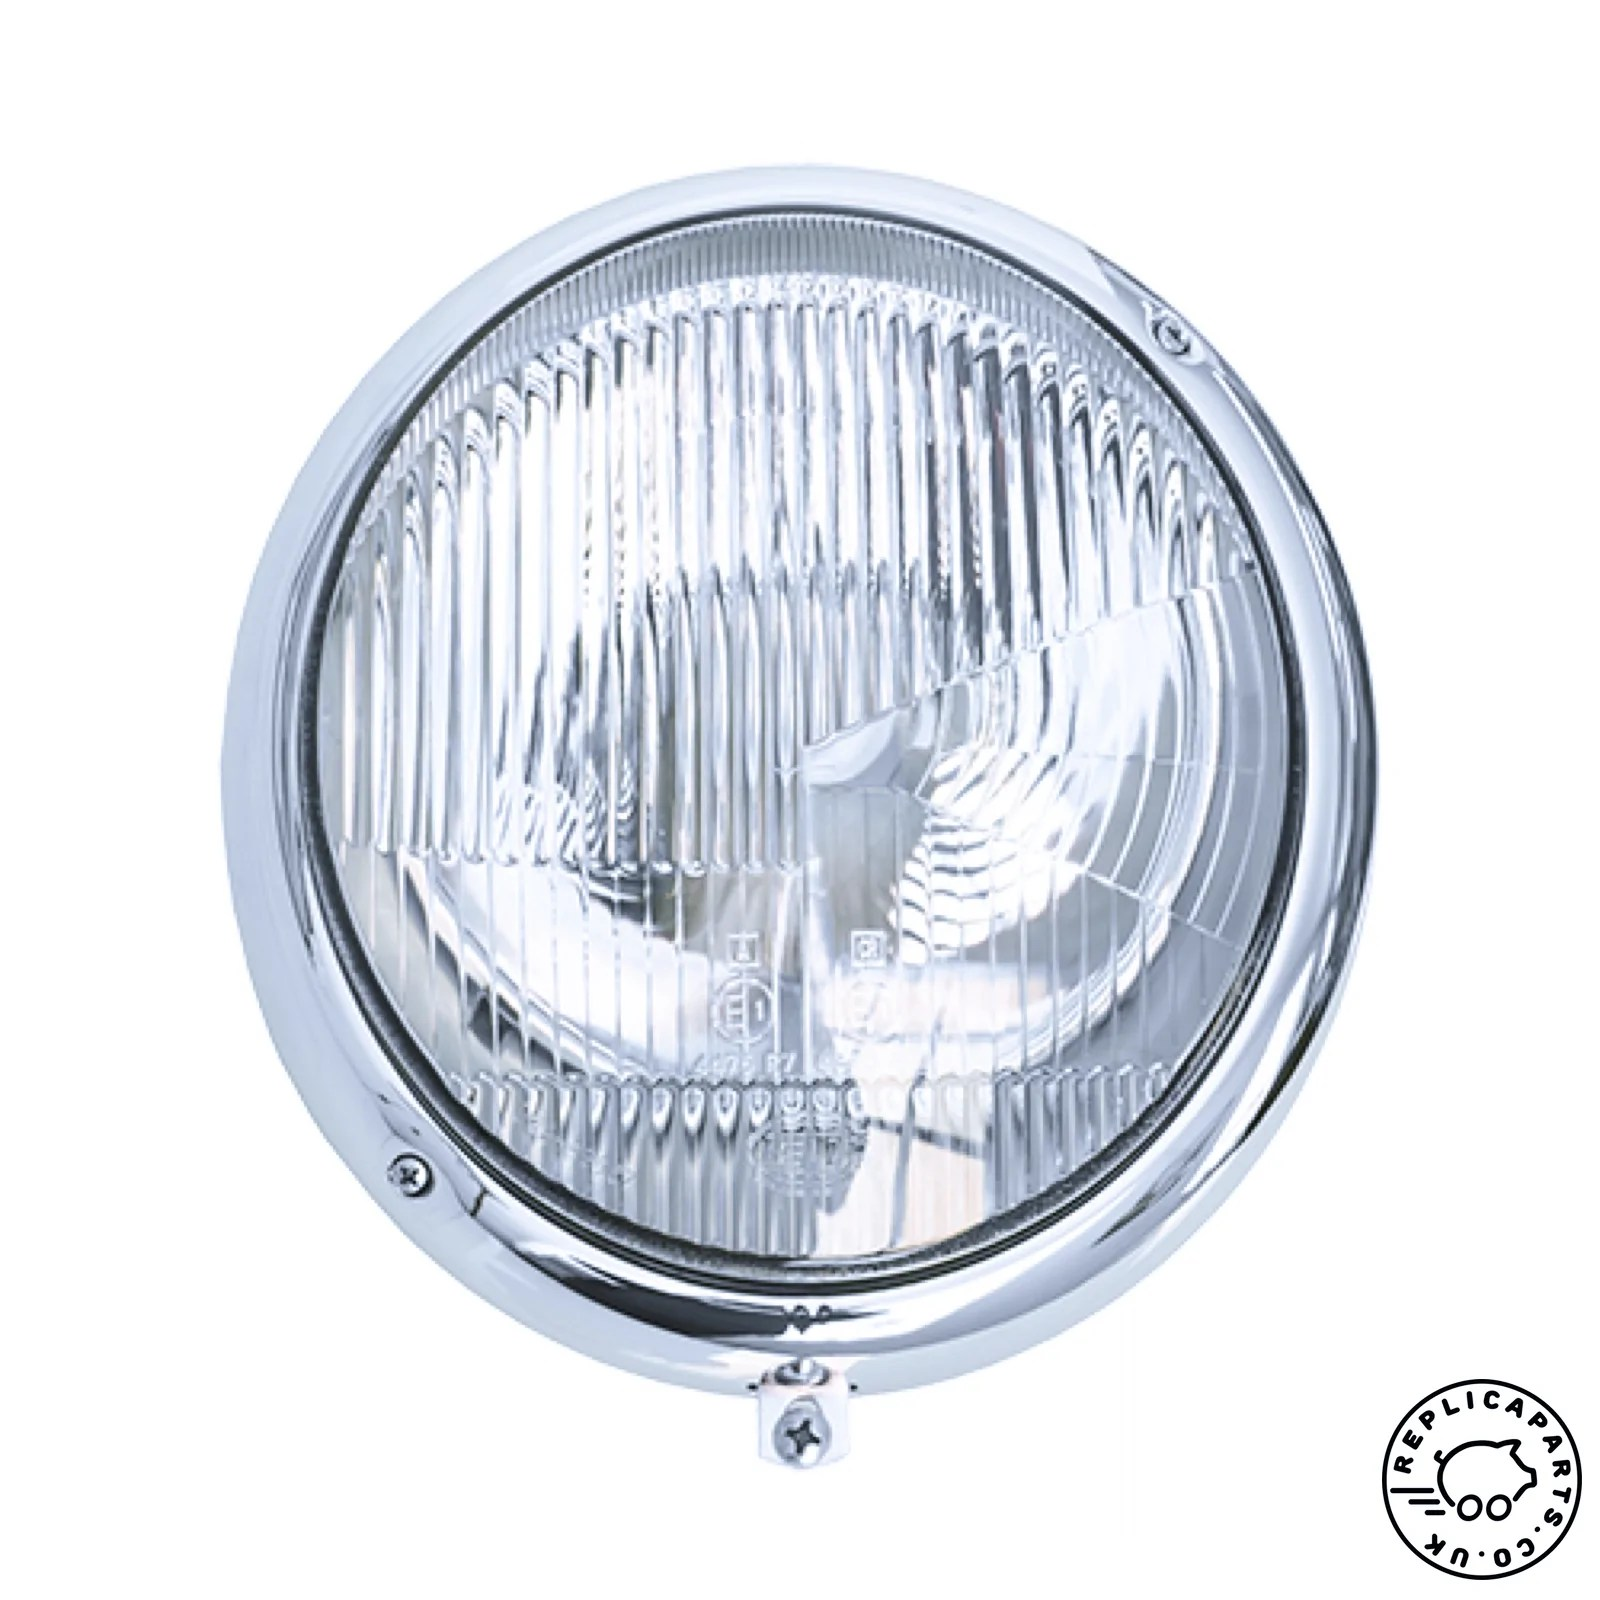 Hella Shop Details About Porsche 356 All Headlight Assembly Hella Euro Lhd Replaces 64463110101